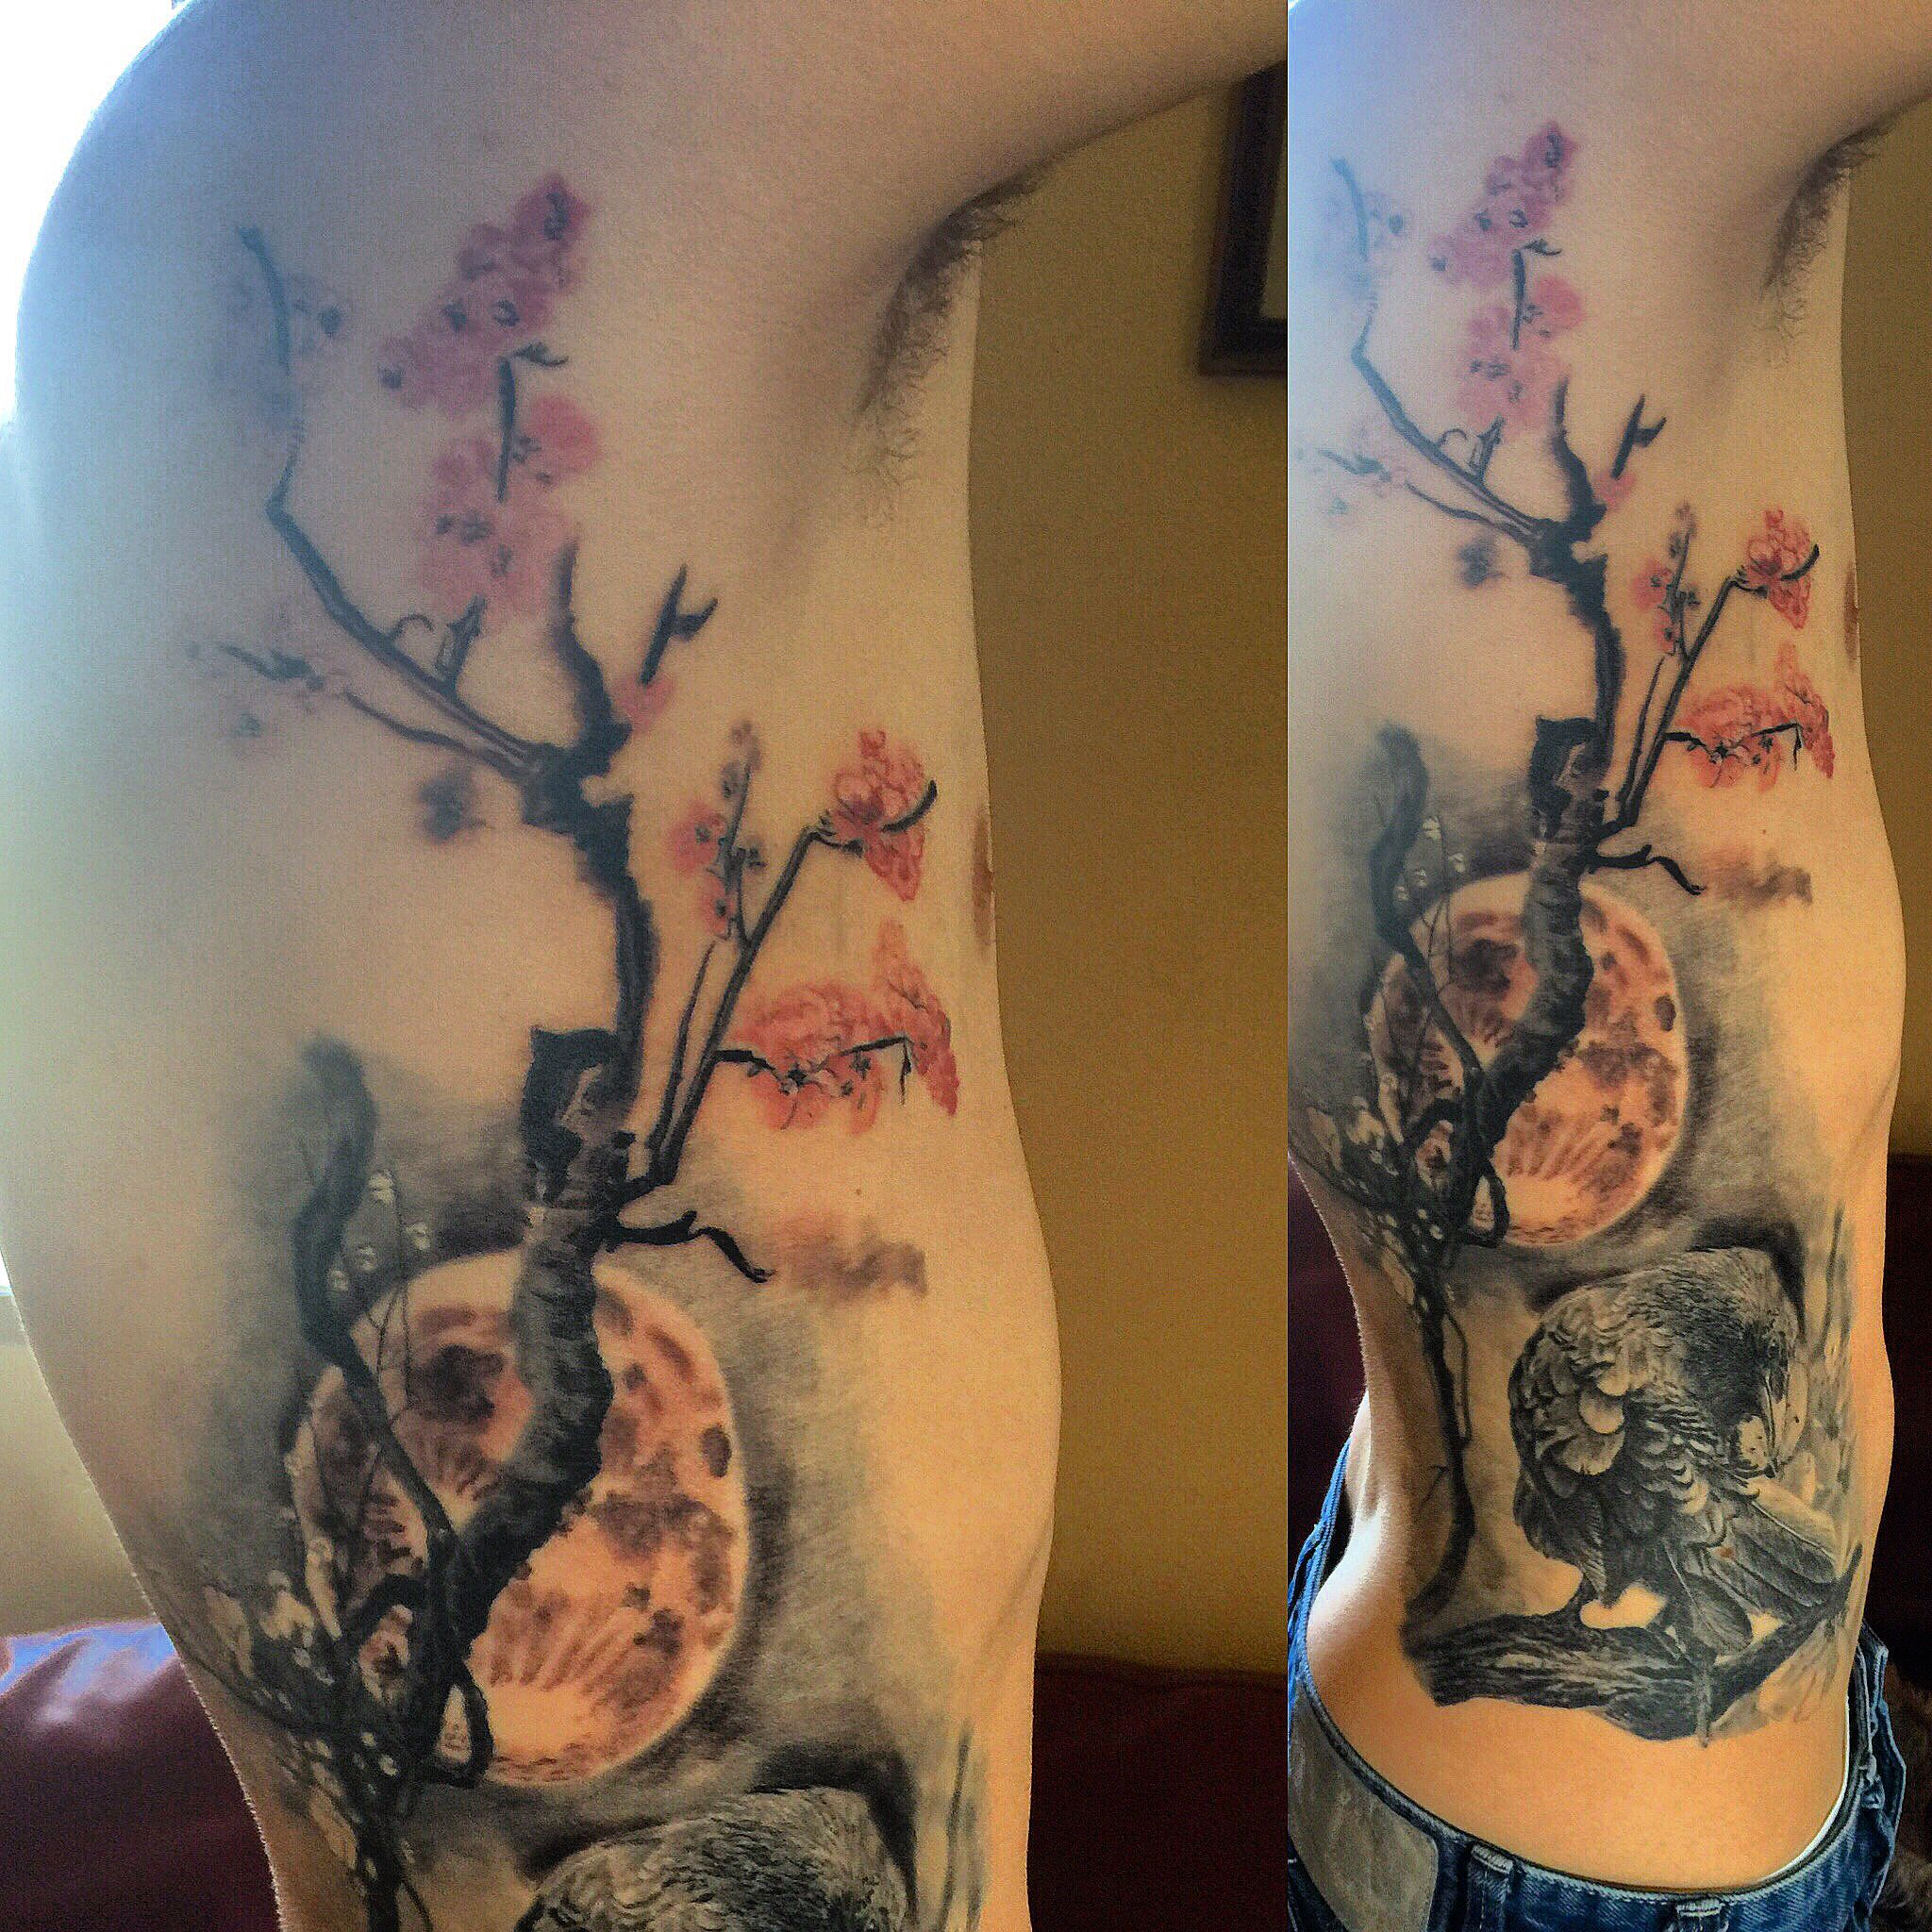 Got The Cherry Blossom Tree And The Full Moon Finished Off On My Side Piece Crow Tattoo Cherrybloss Floral Tattoo Design Tattoo Designs Blossom Tree Tattoo